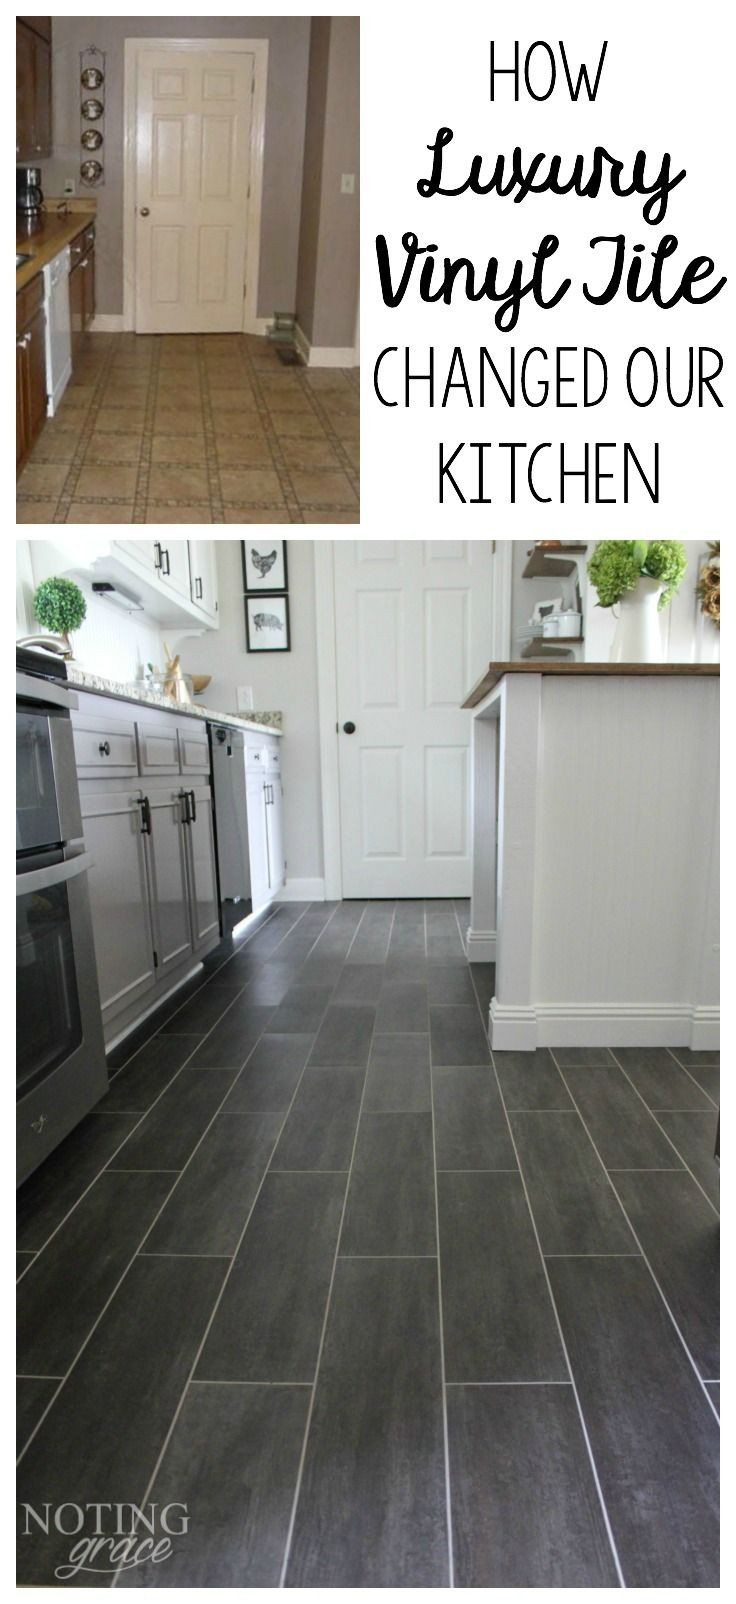 painting hardwood floors with chalk paint of cheap kitchen flooring fresh i painted my entire kitchen with chalk inside cheap kitchen flooring awesome diy kitchen flooring pinterest of cheap kitchen flooring fresh i painted my